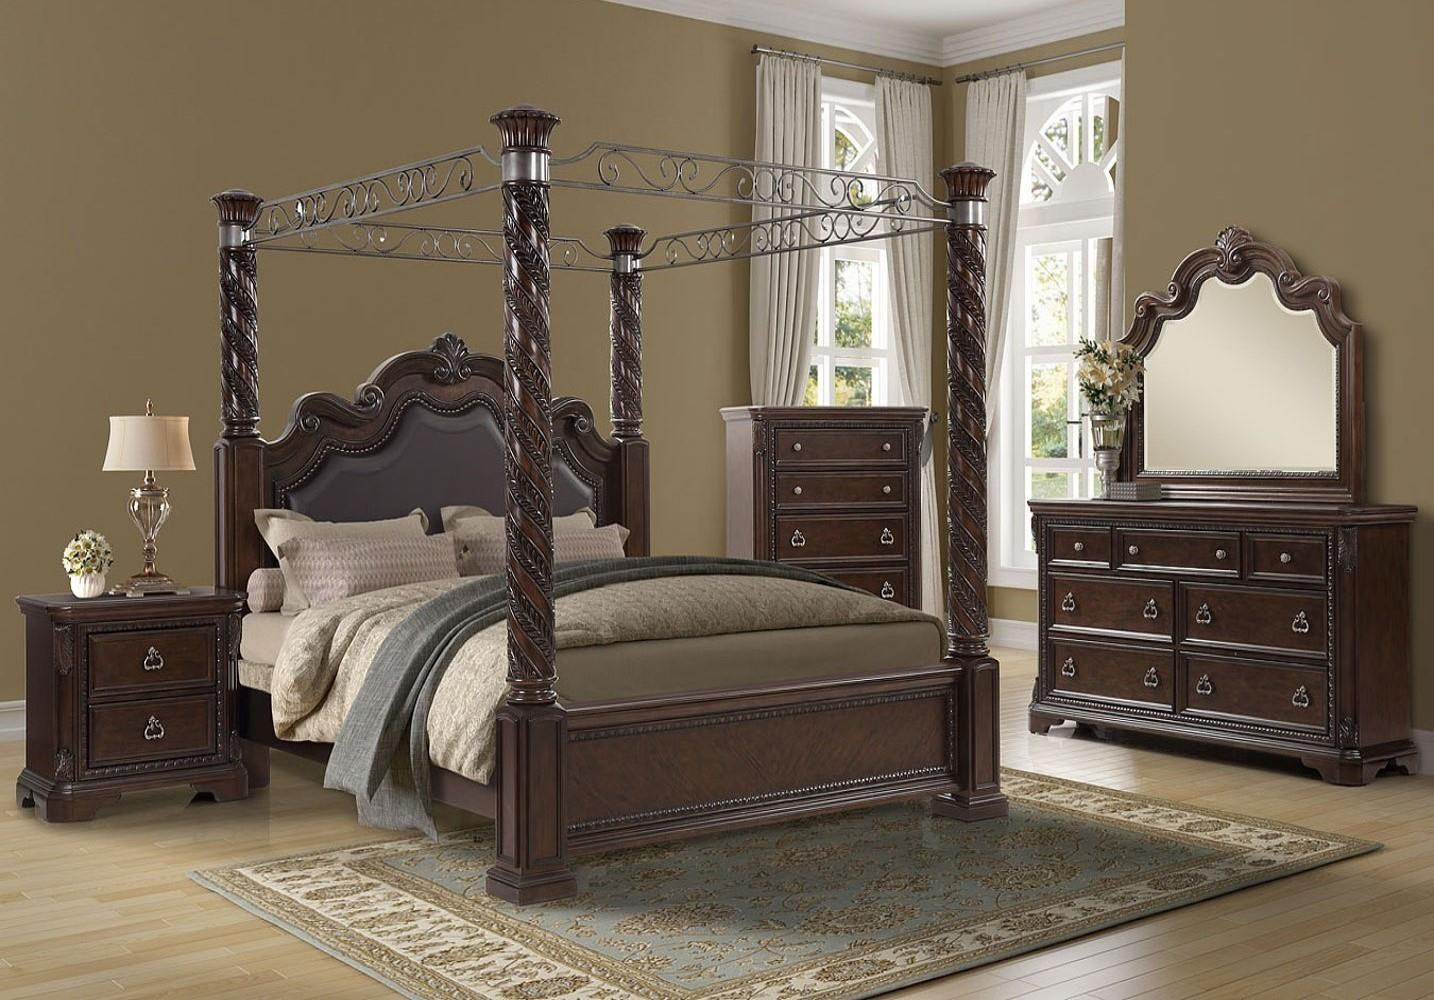 Coventry 5 Pc King Bedroom